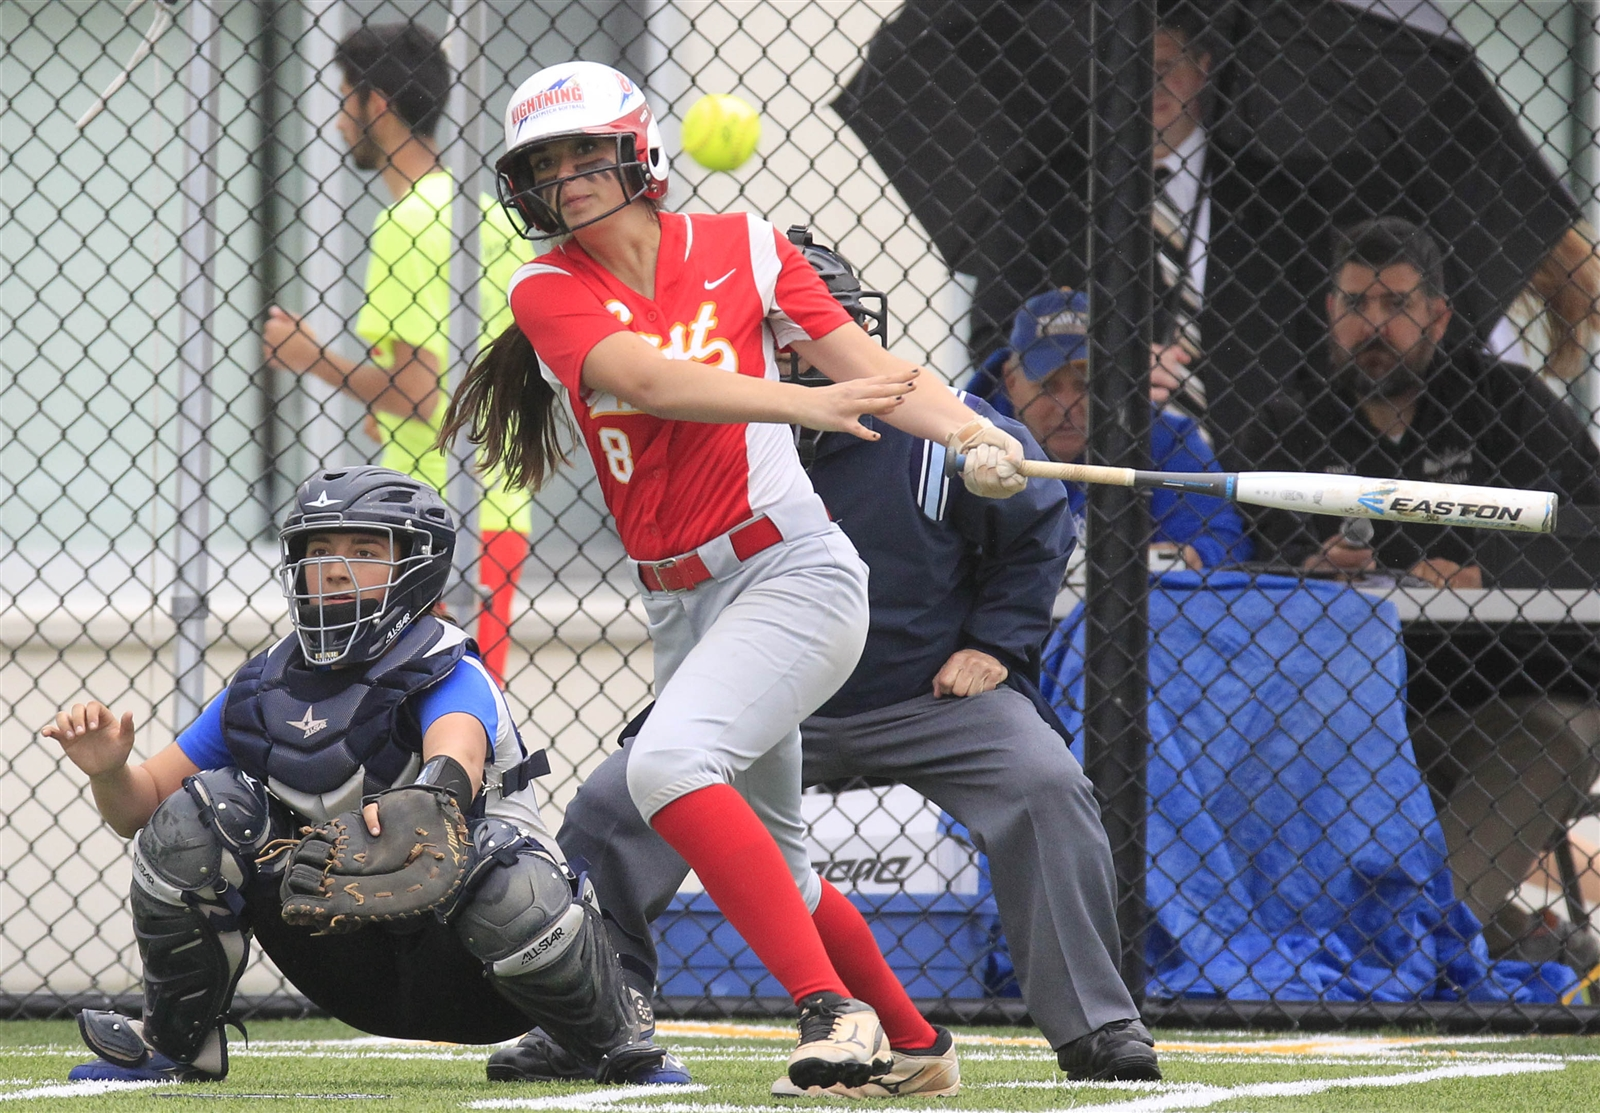 Williamsville Eastu2019s Brianna Bucello hits an rbi double in the first inning against Williamsville South at Williamsville North High School on Thursday, May 25, 2017.